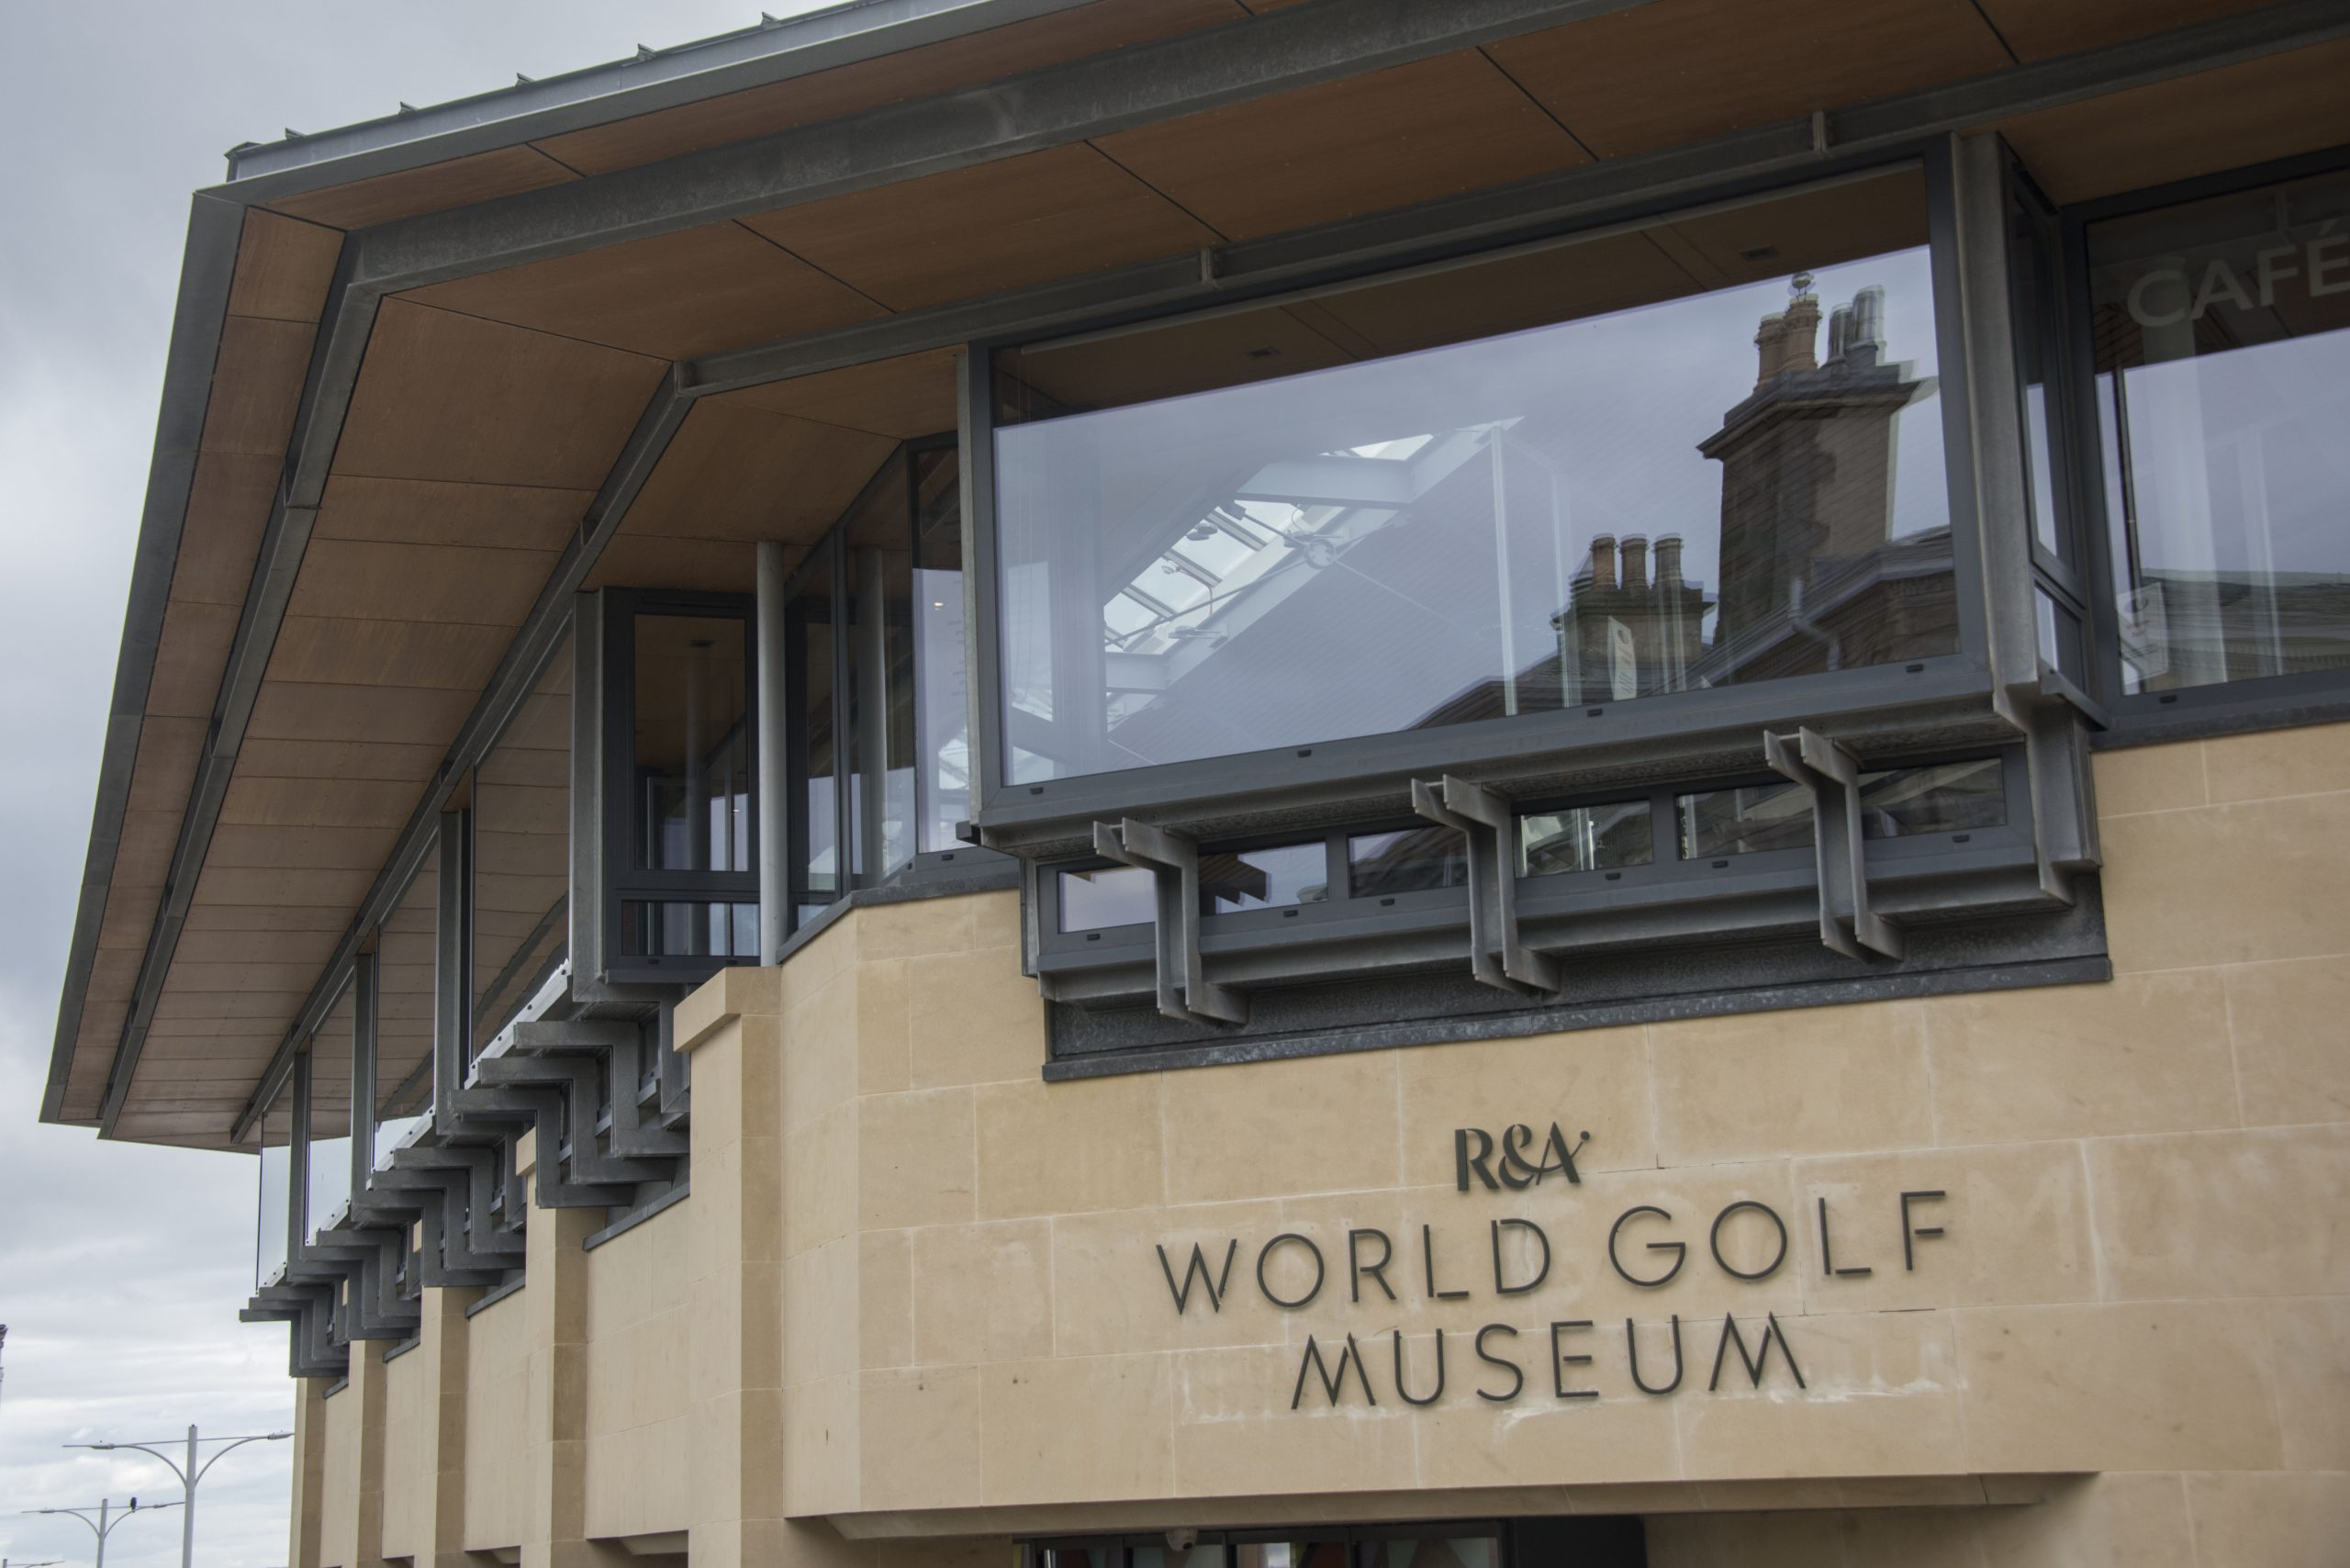 THE R&A WORLD GOLF MUSEUM OPENS FOLLOWING A COMPLETE REDEVELOPMENT